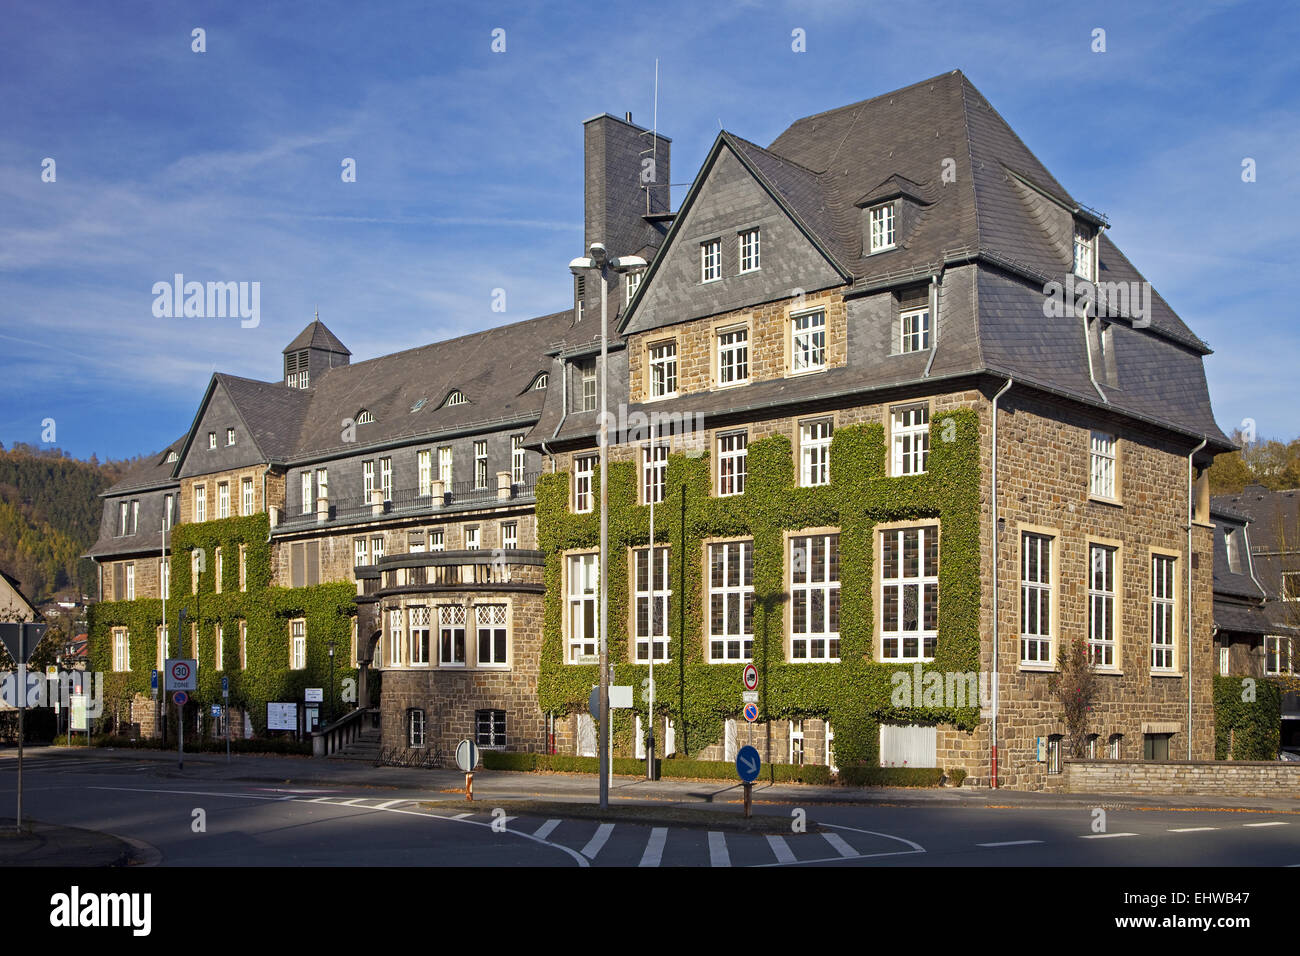 The Town Hall in Werdohl in Germany. - Stock Image